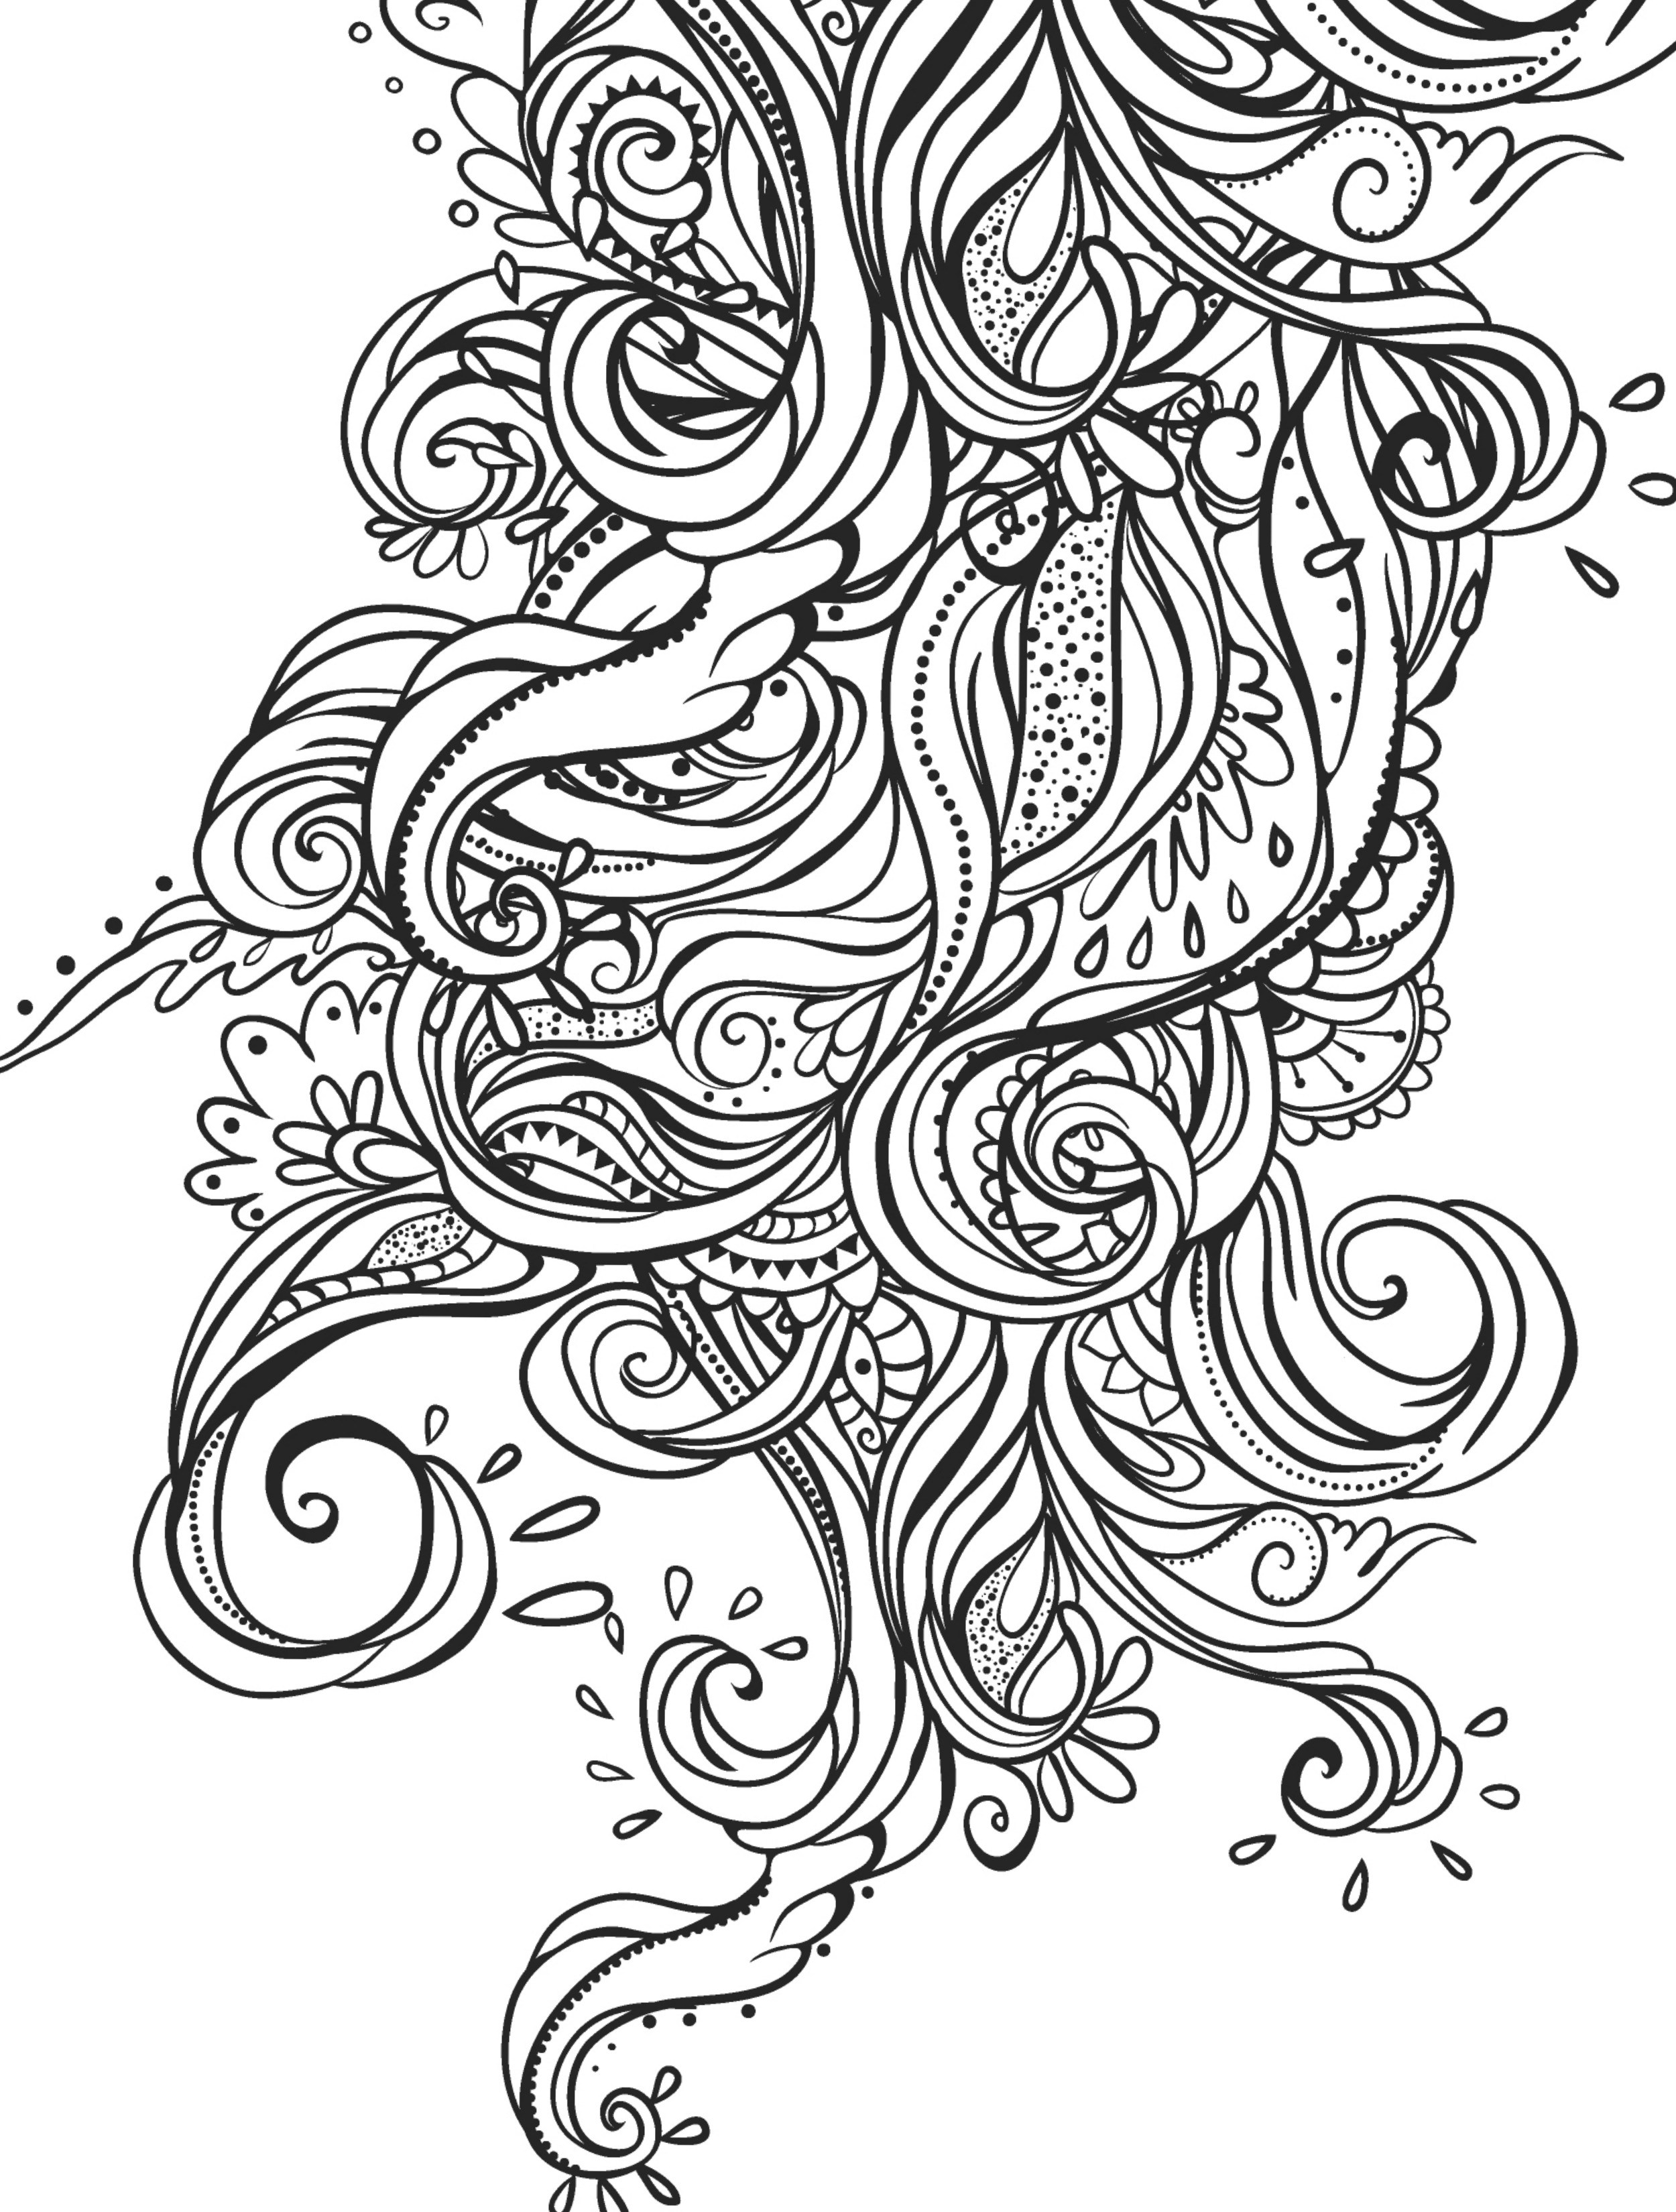 coloring book food coloring pages doodle art alley book coloring